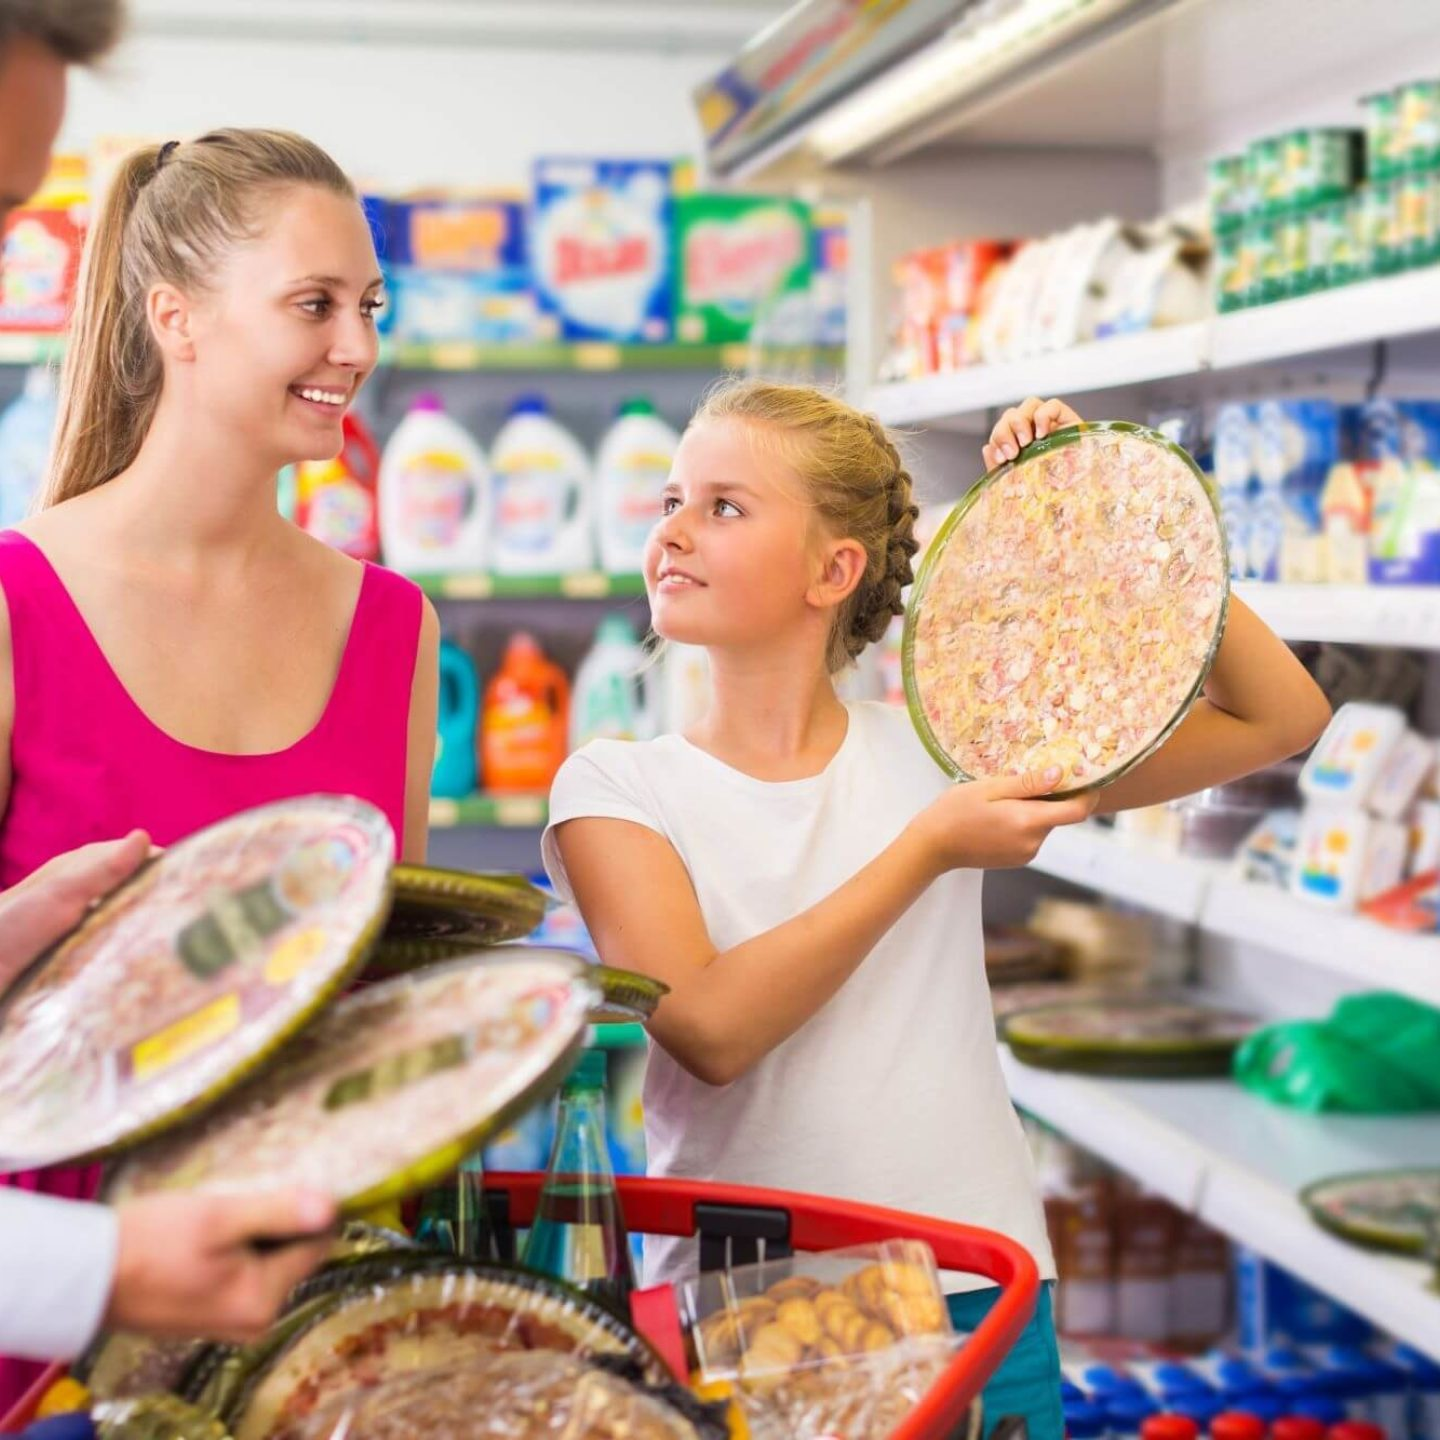 Family picking out pie in store - Getting to the Truth About Gluten: Everything You Need to Know | NSF International